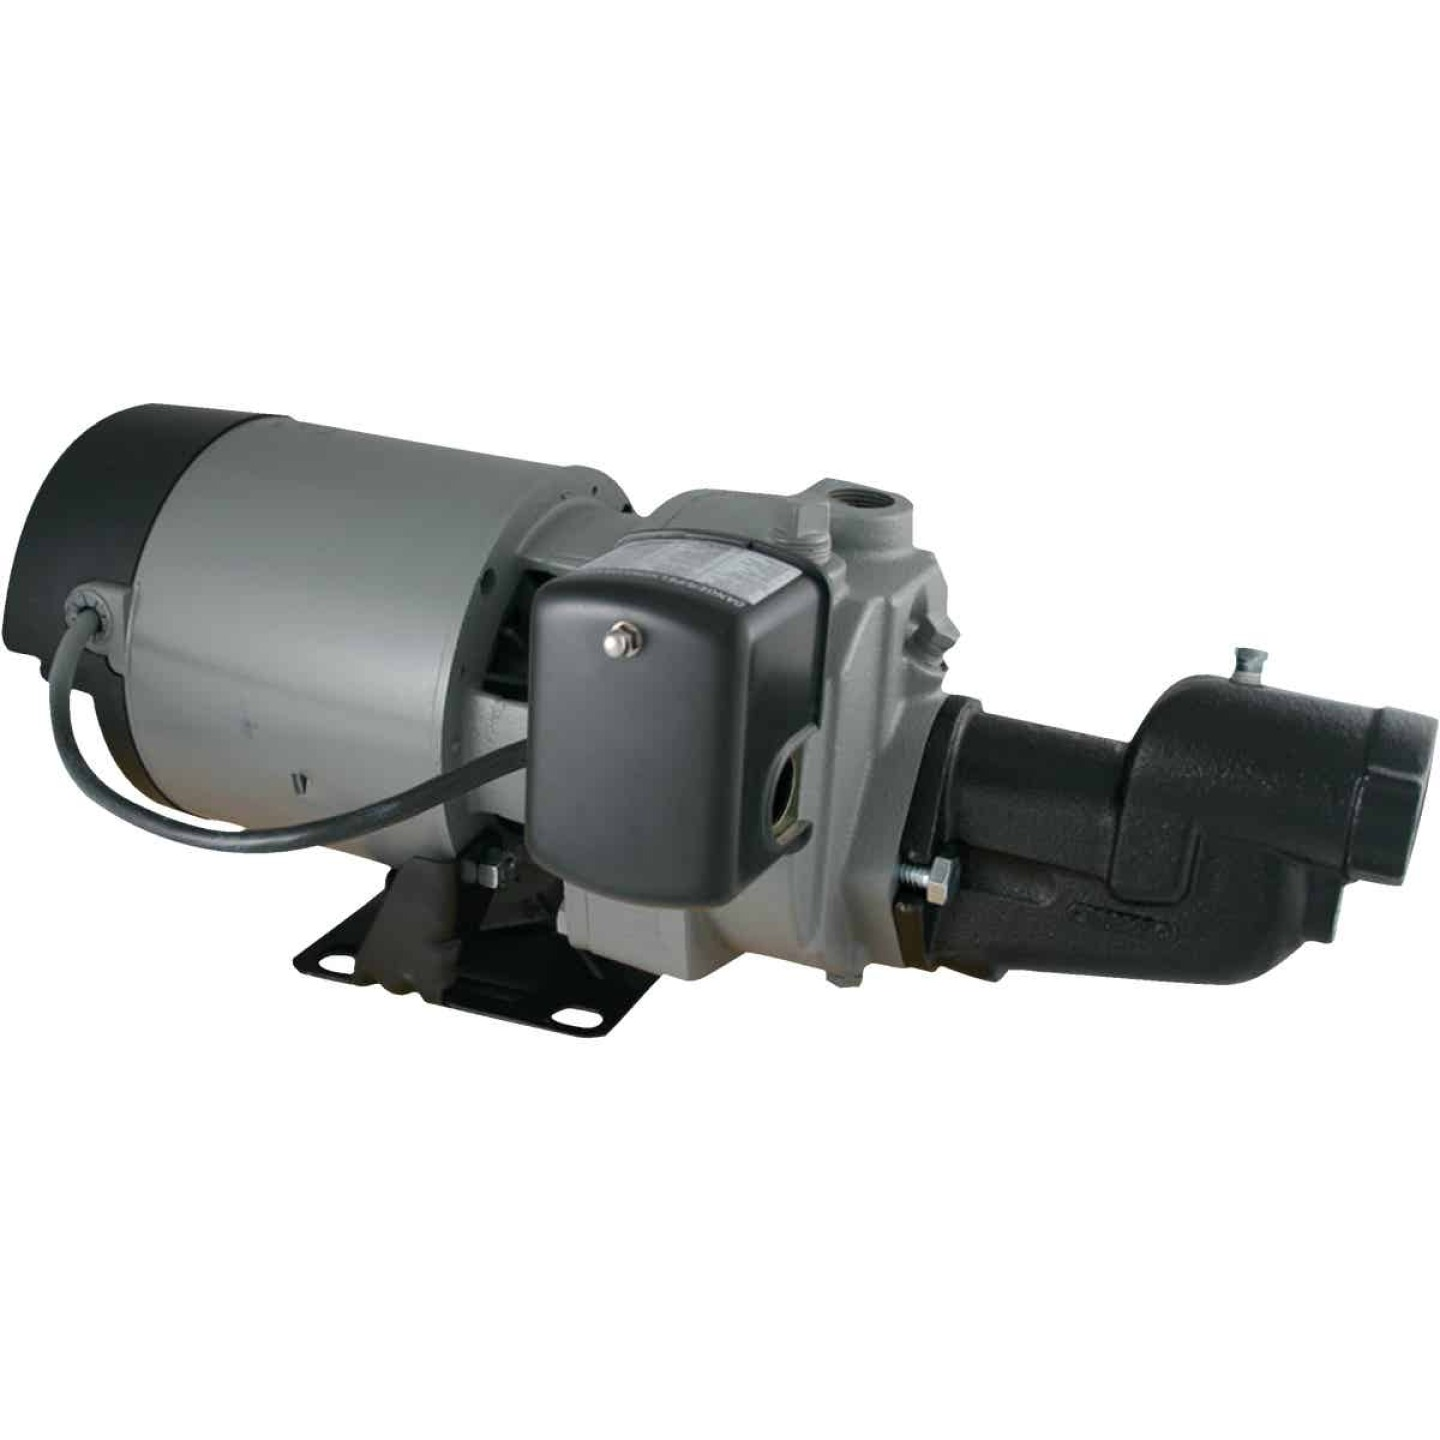 Star Water Systems Shallow Well Jet Pump Image 1